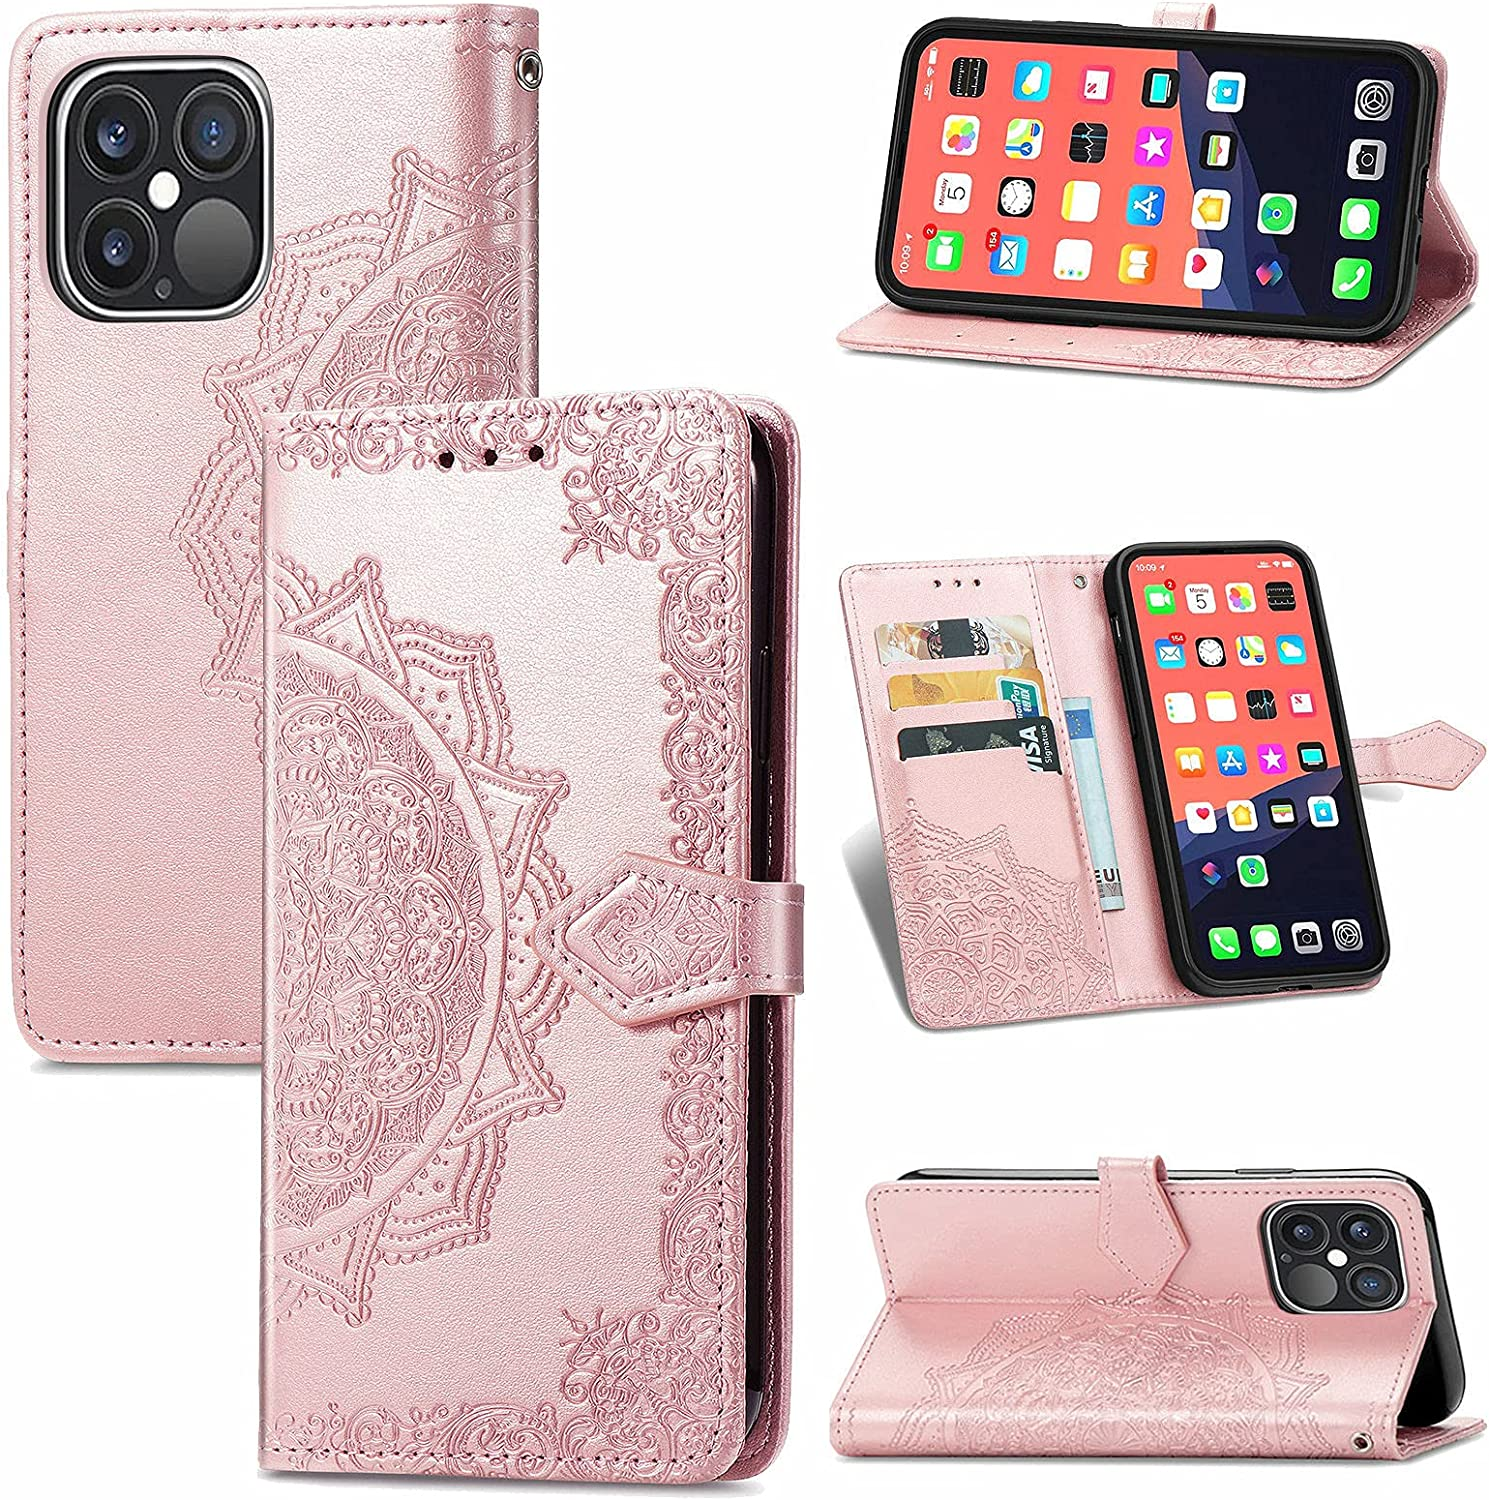 ISYSUII Wallet Case for Samsung Galaxy A51 4G Emboss Mandala Flower Pattern Flip Case PU Leather Magnetic Kickstand Cover with Card Slots Shockproof Protective Cover for Women Girls,Rose Gold